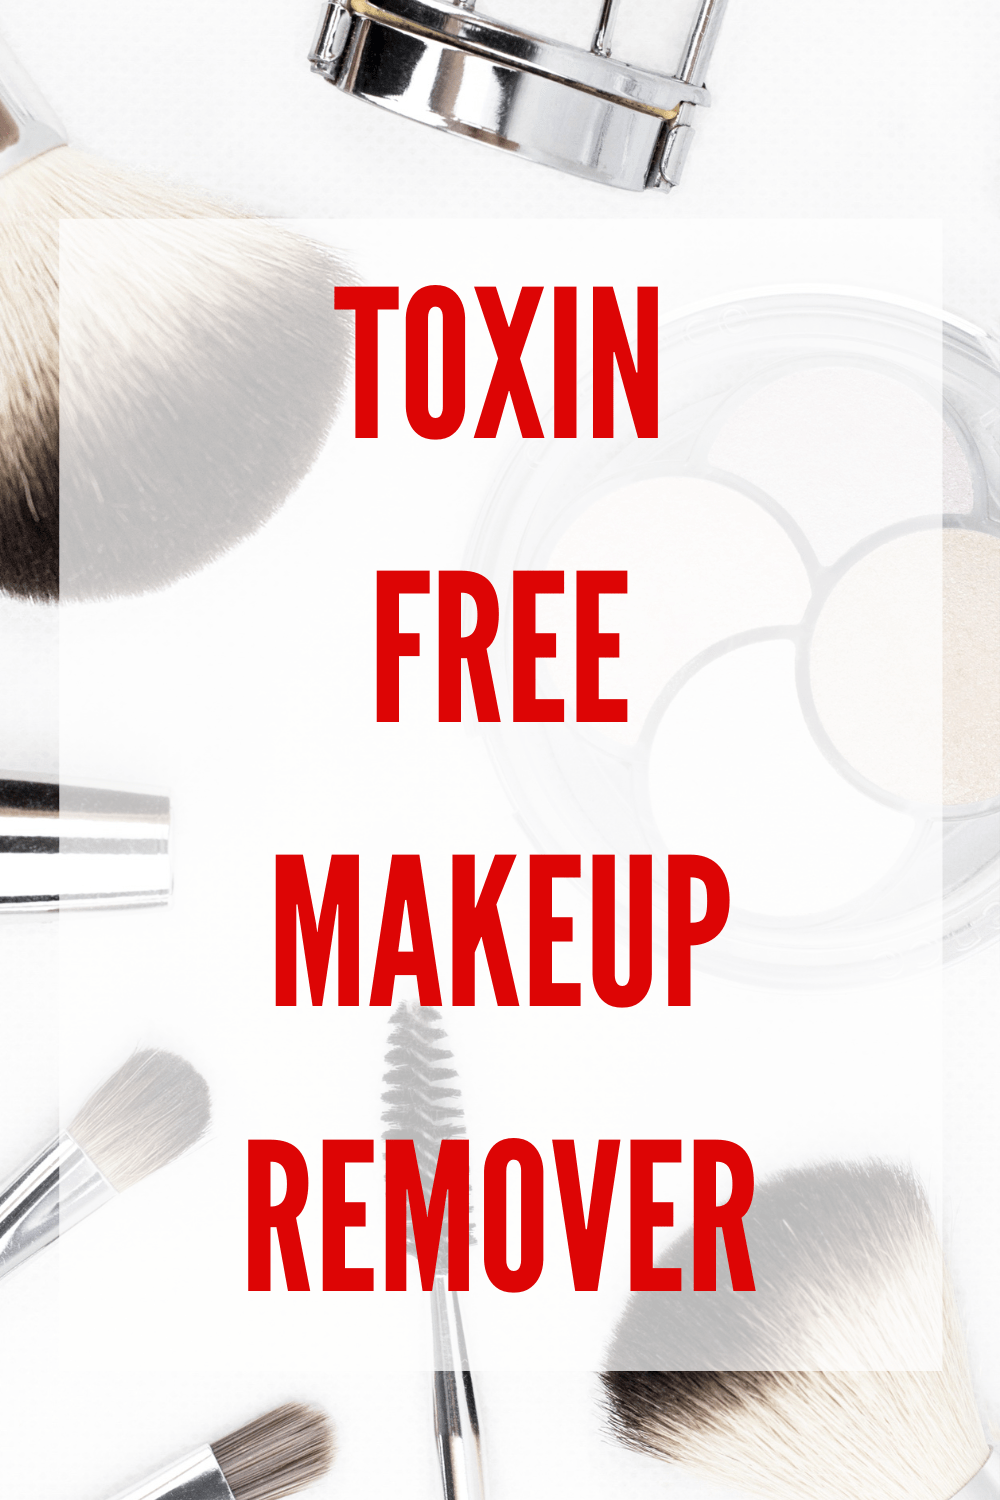 ToxinFree Makeup Remover in 2020 Toxin free makeup